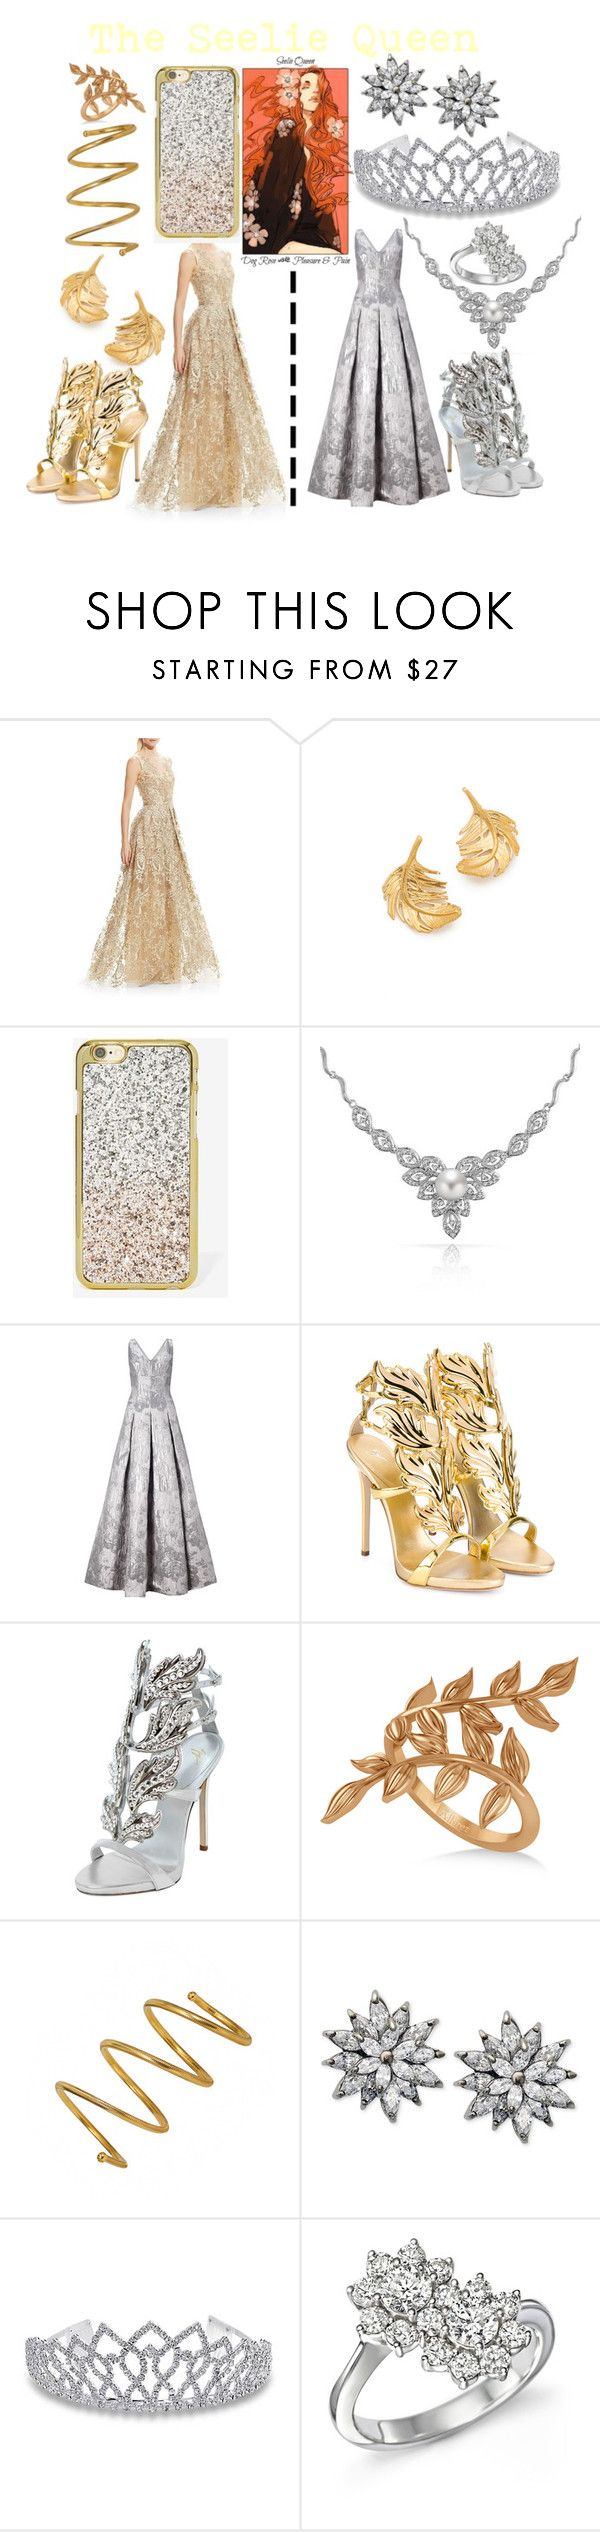 """The Seelie Queen"" by aquatic-angel ❤ liked on Polyvore featuring Theia, Alex Monroe, Skinnydip, Bling Jewelry, Aidan Mattox, Giuseppe Zanotti, Allurez, Chanel, Nina and Bloomingdale's"